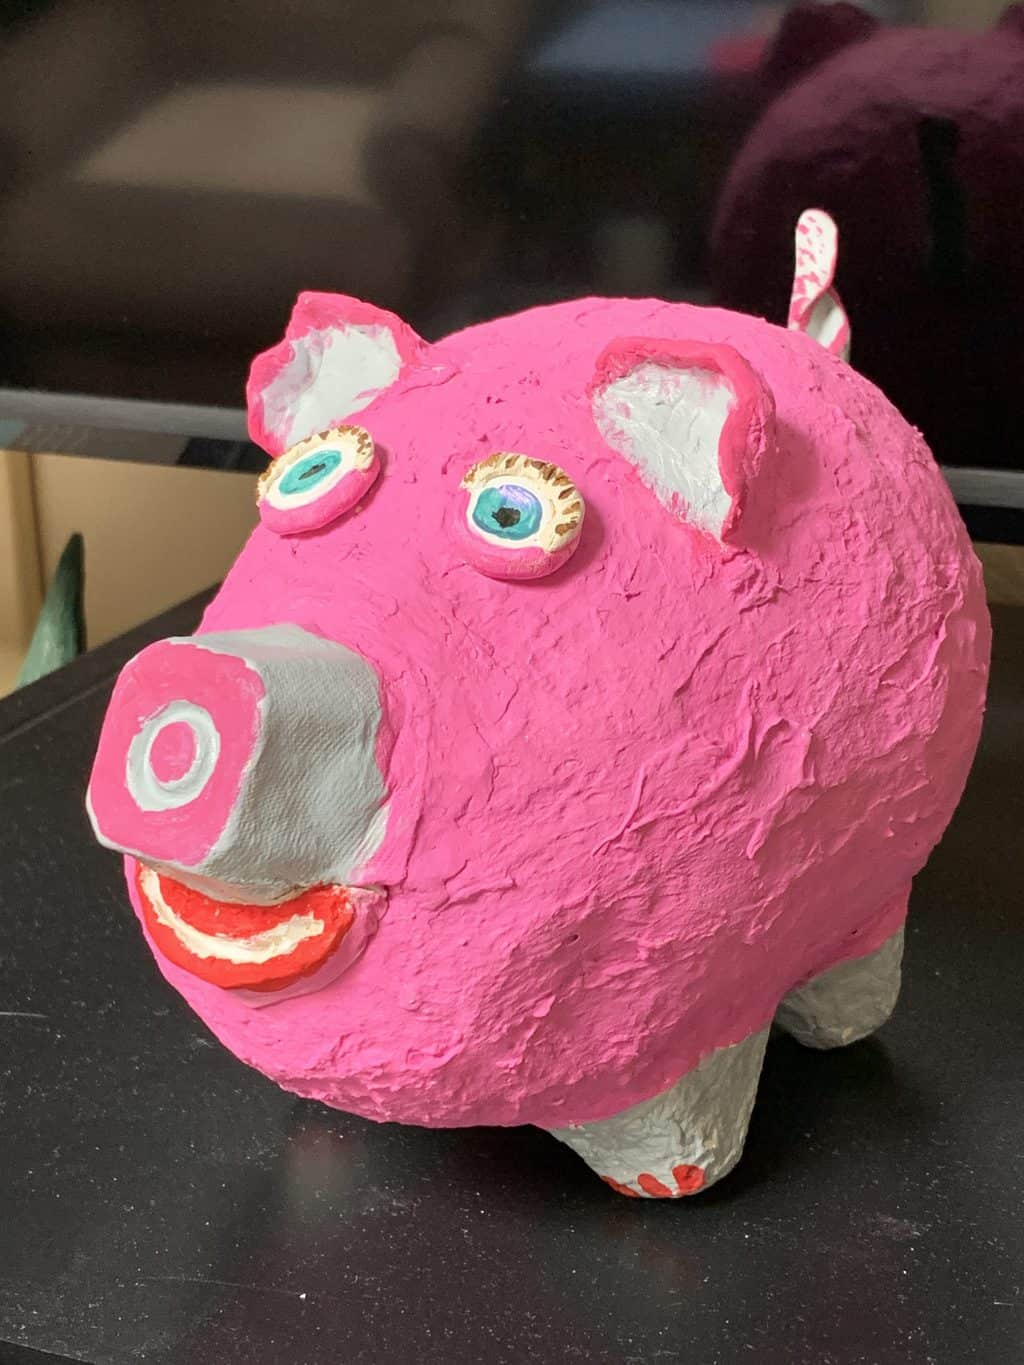 Porketta the paper mache pig